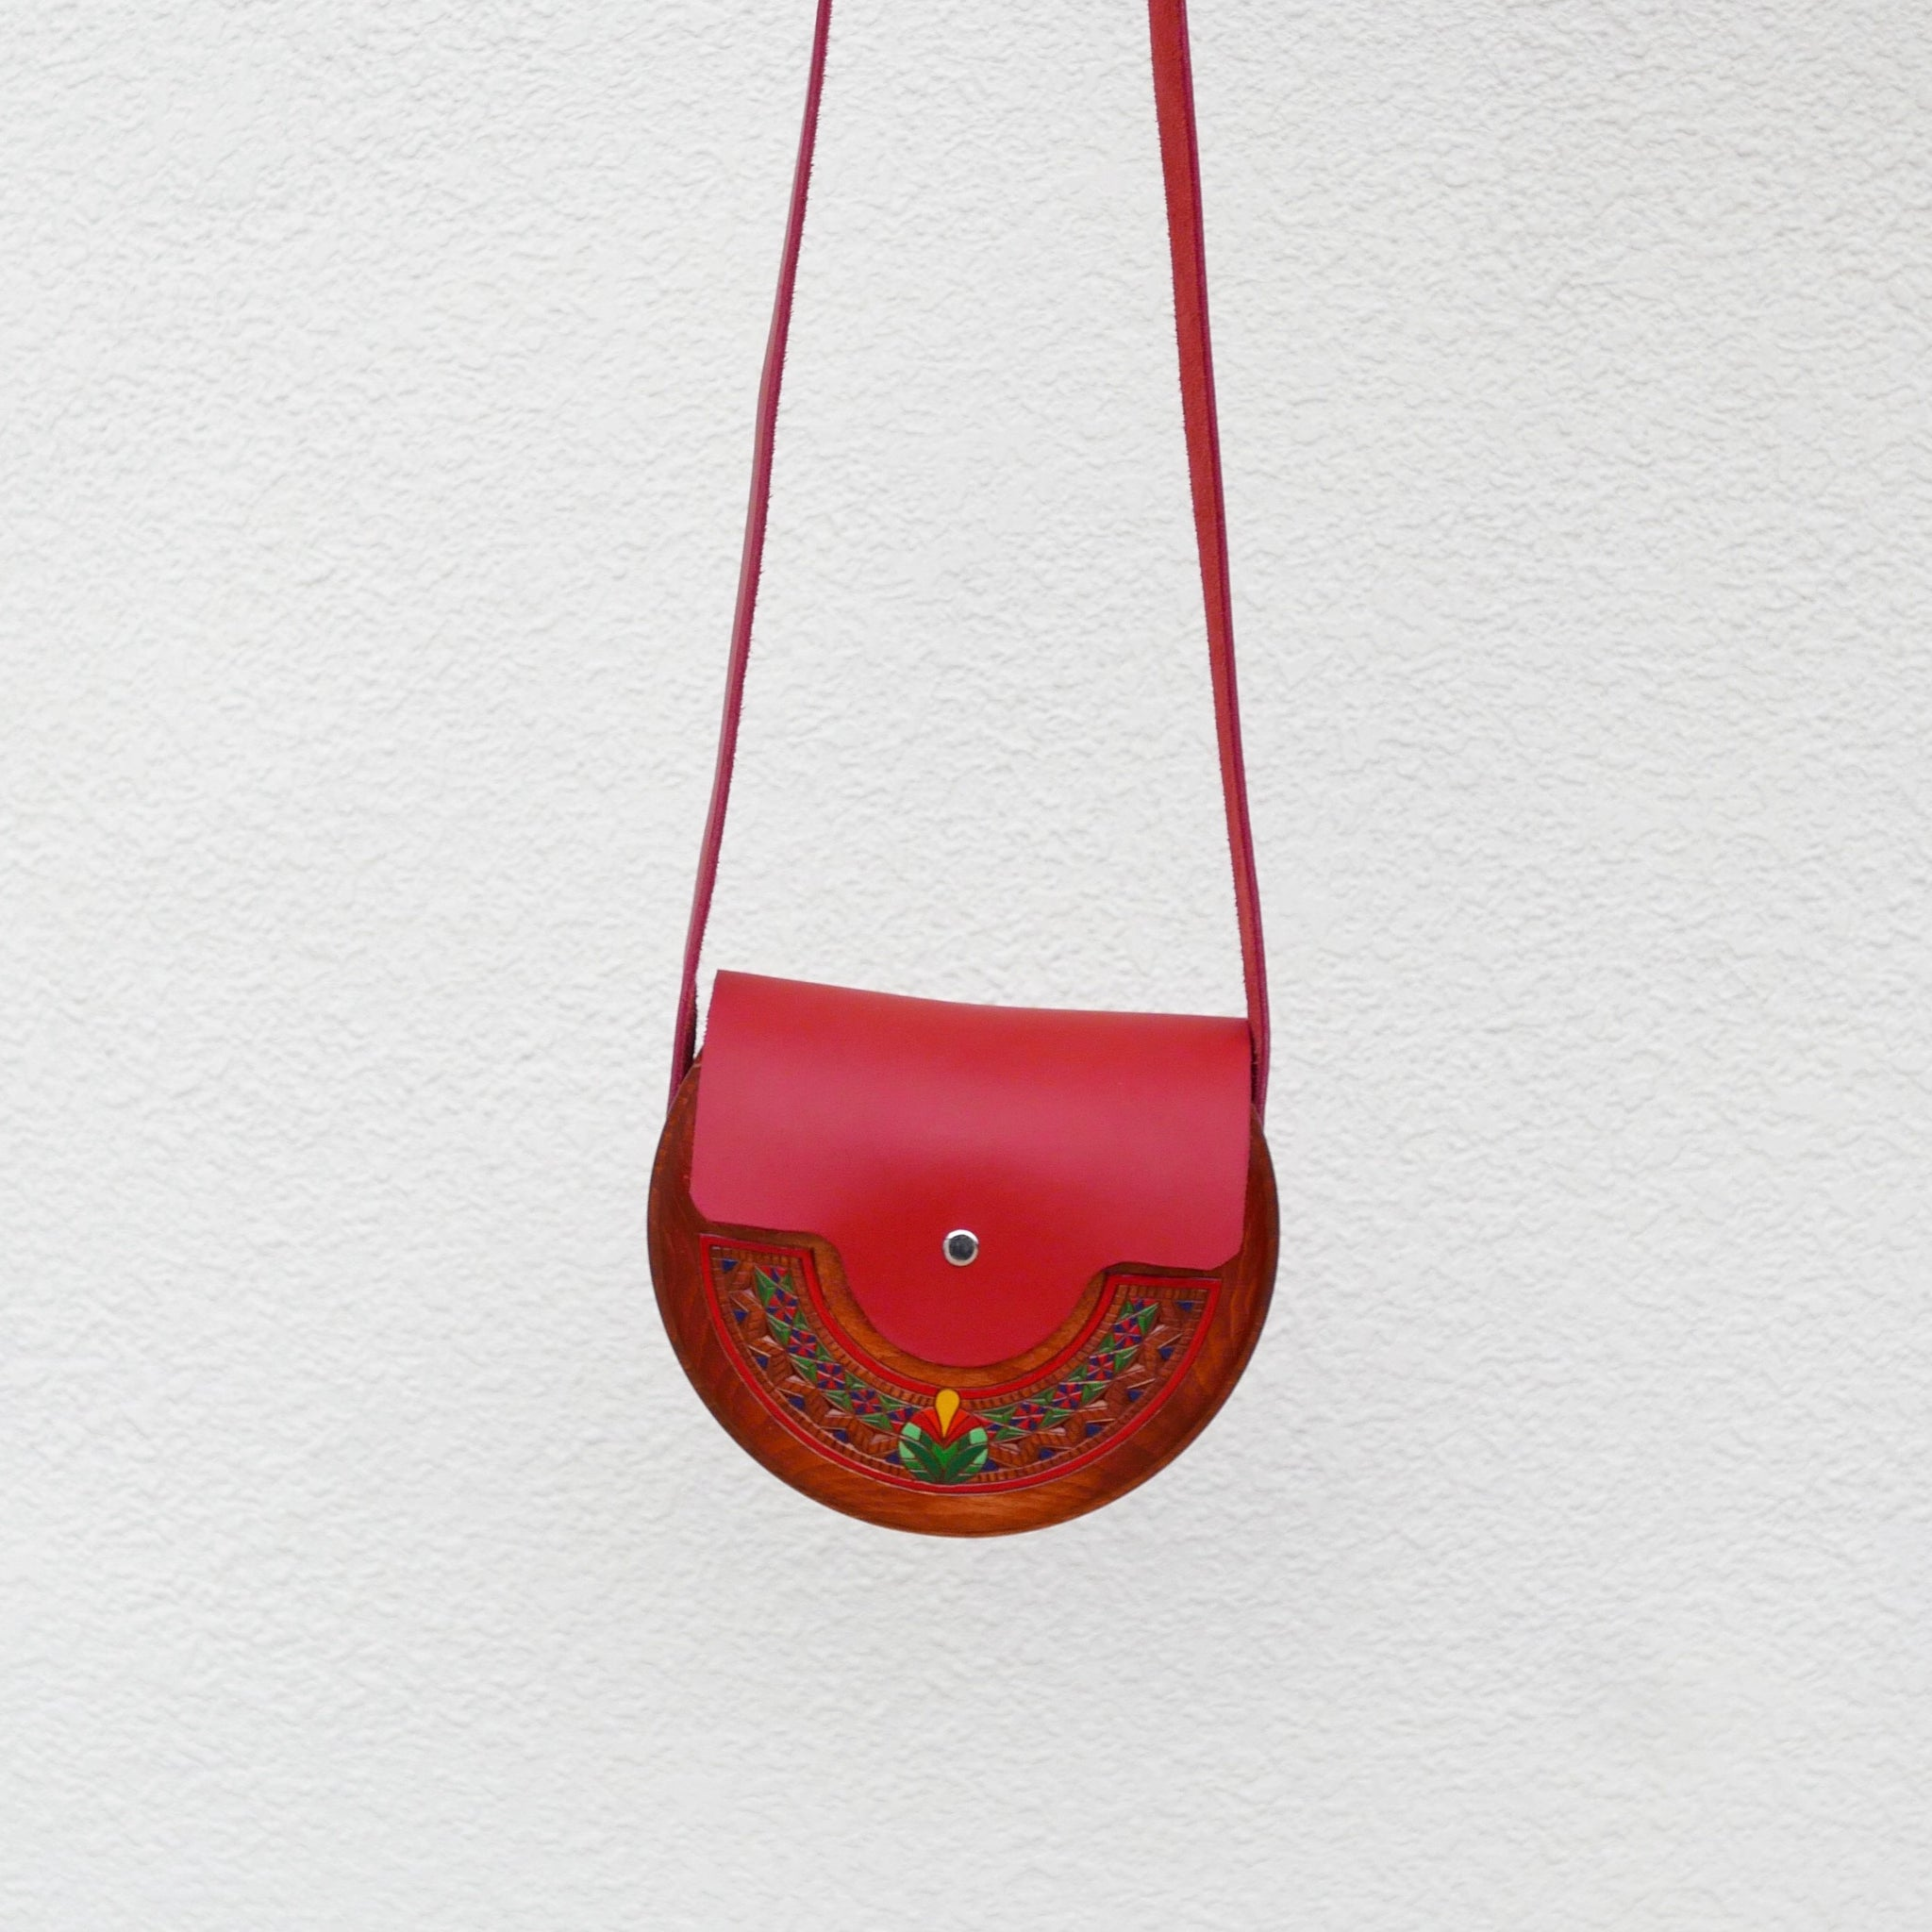 Wooden Bags (Half-Round . Red Leather / Cherry Wood / Coloured Patterns)